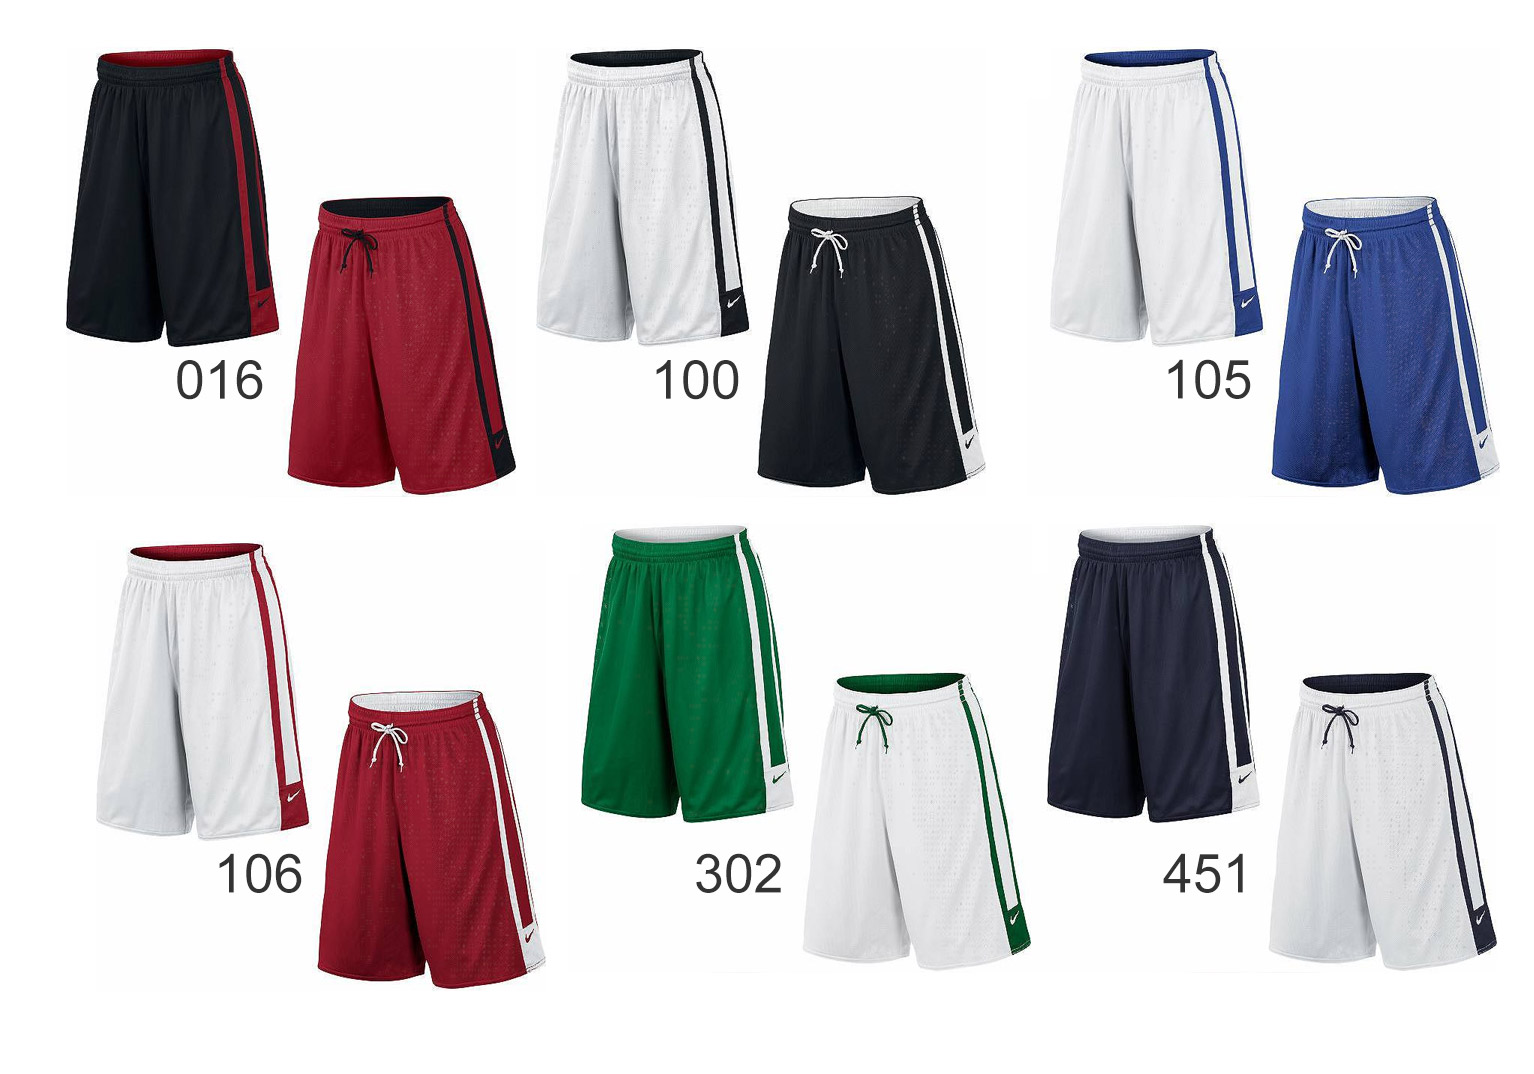 NIKE (Nike) basketball Nike League reversible shorts